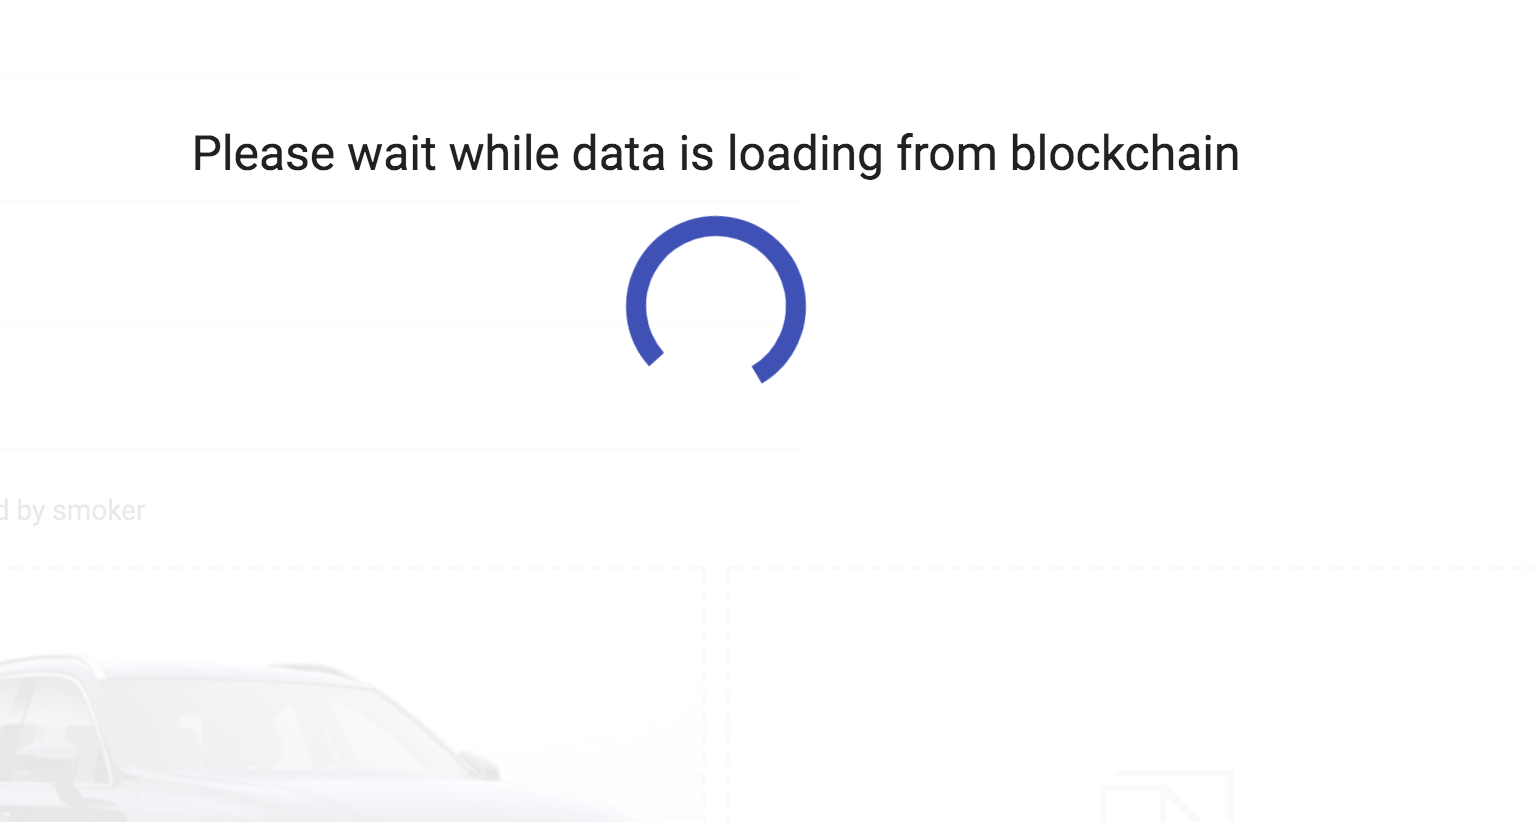 you will see a loading window